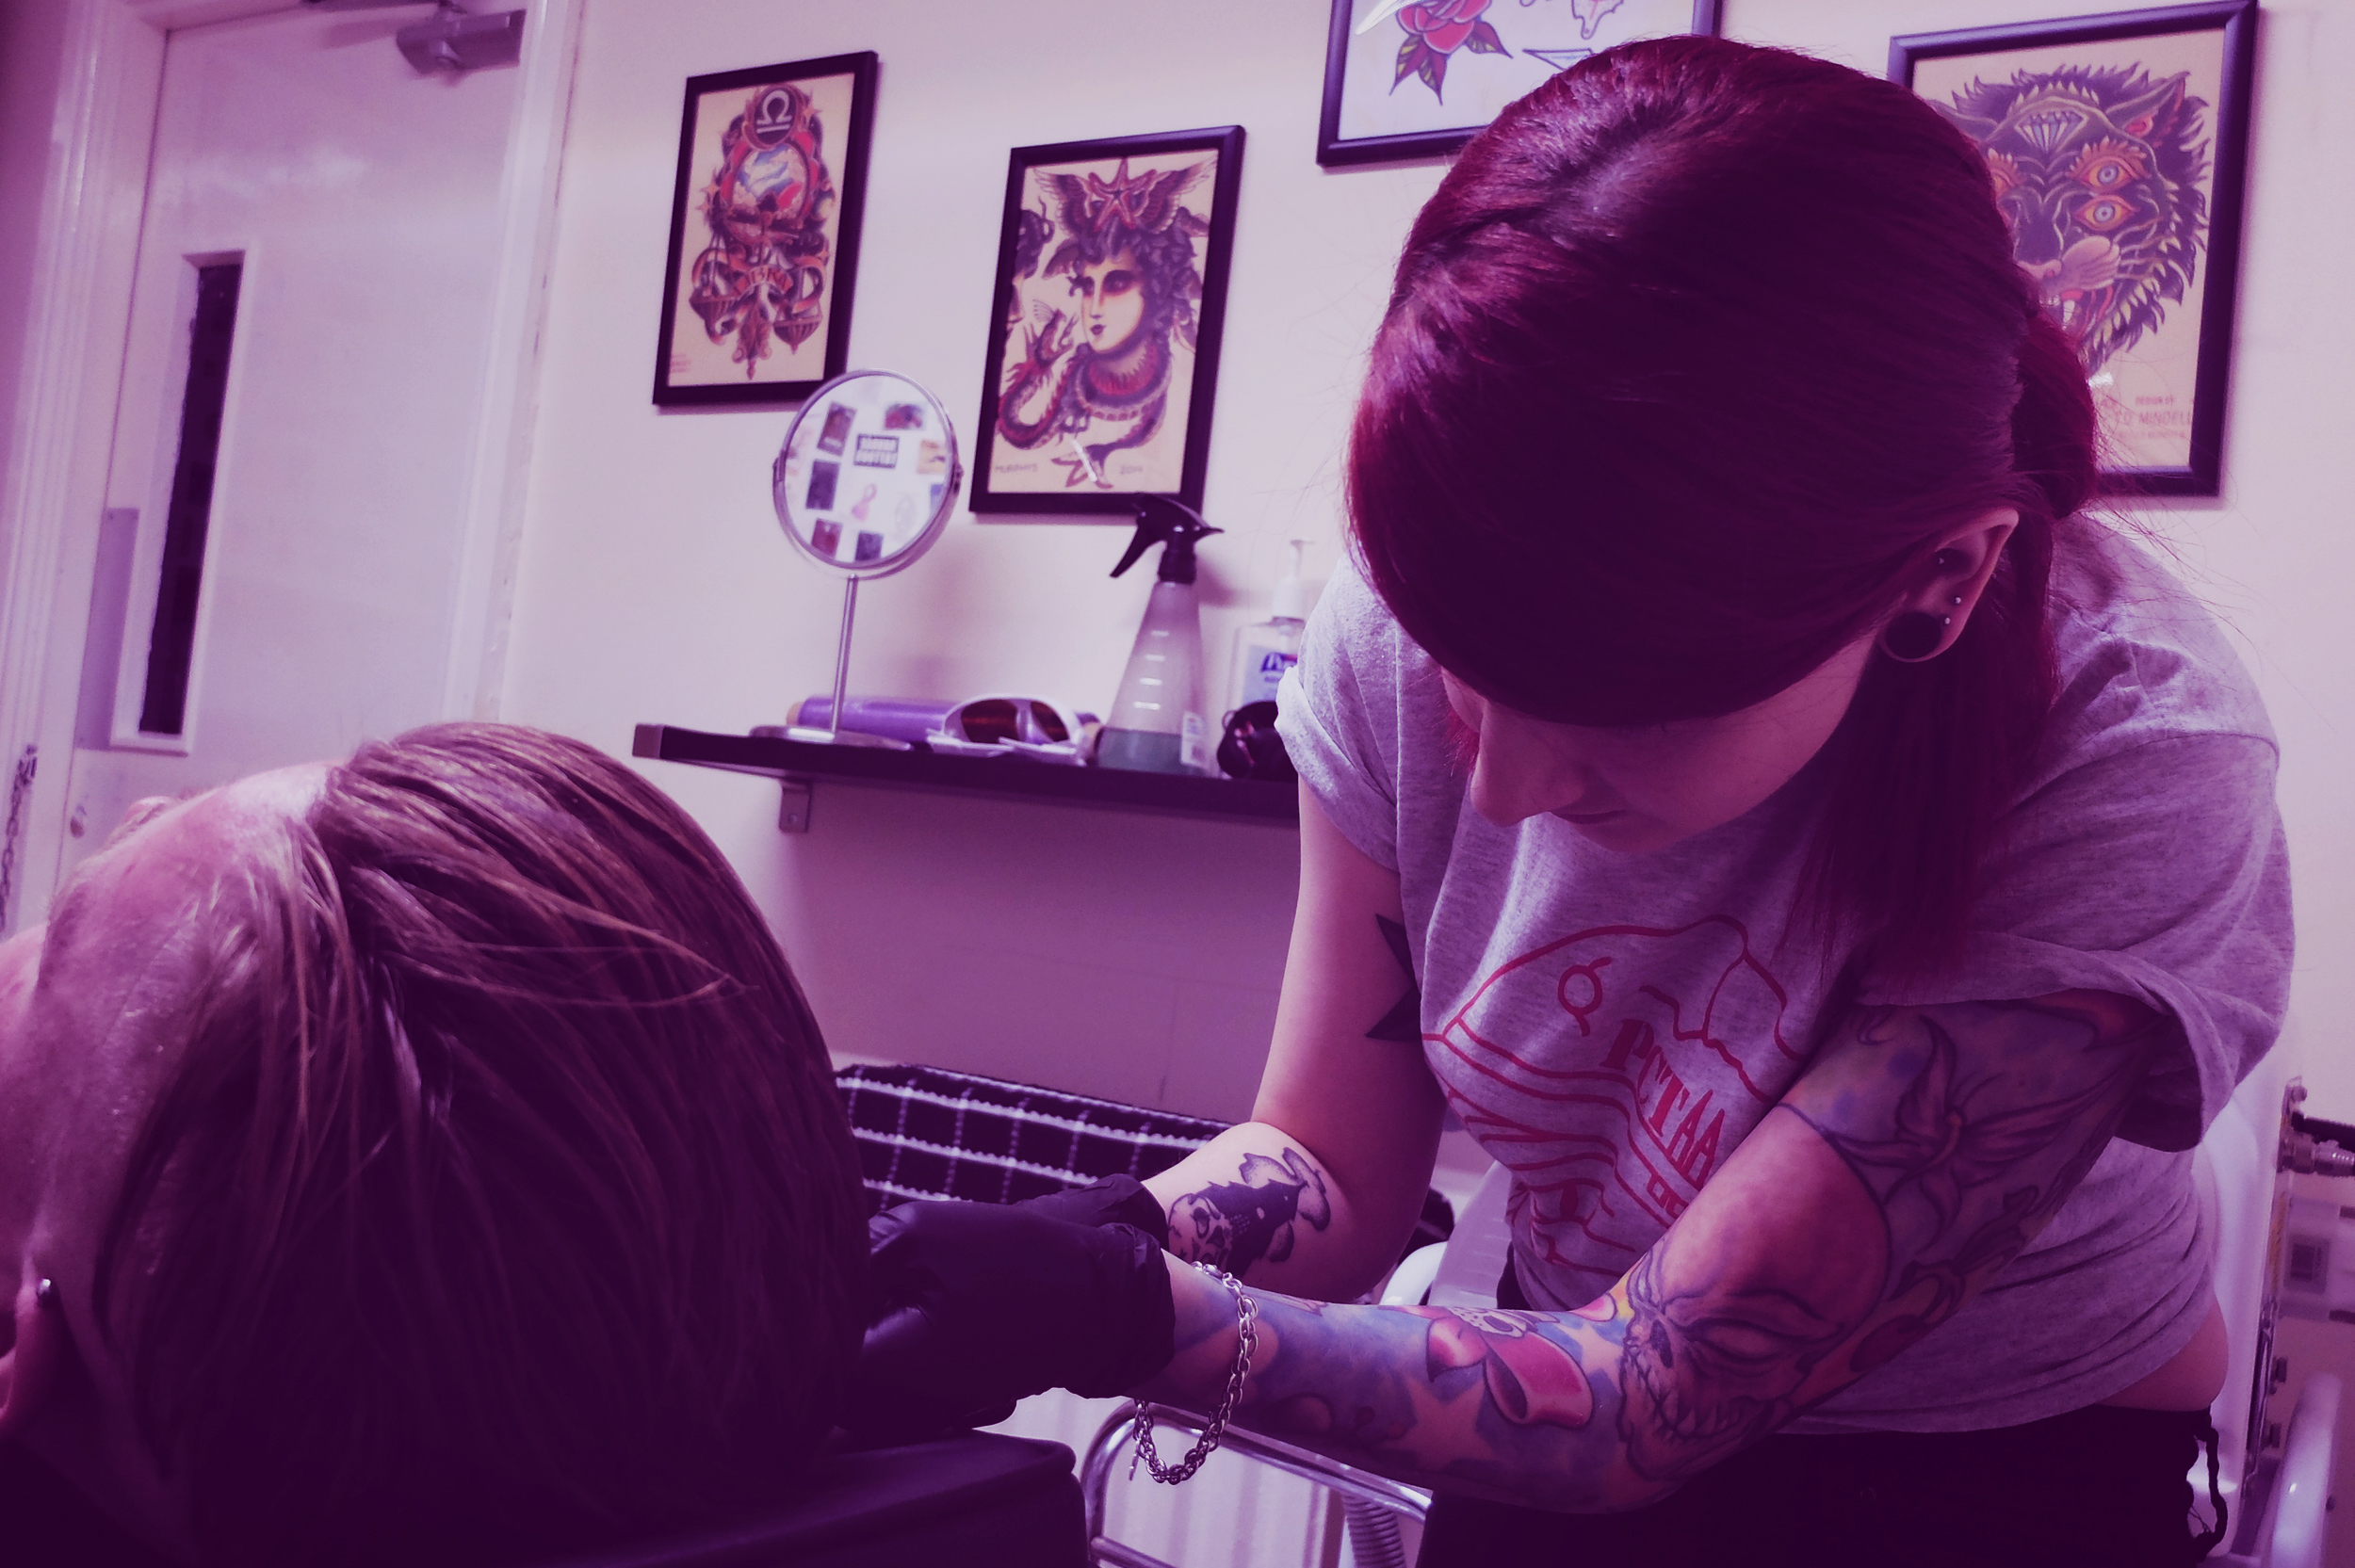 Pixie Piercing and Cosmetic Tattooing - Pixie is our resident piercer and cosmetic tattooer here at Panther Crew. For more information head over to her website at www.pixiecosmetics.co.uk, find her on facebook, or drop by the shop!Panther Crew Team -